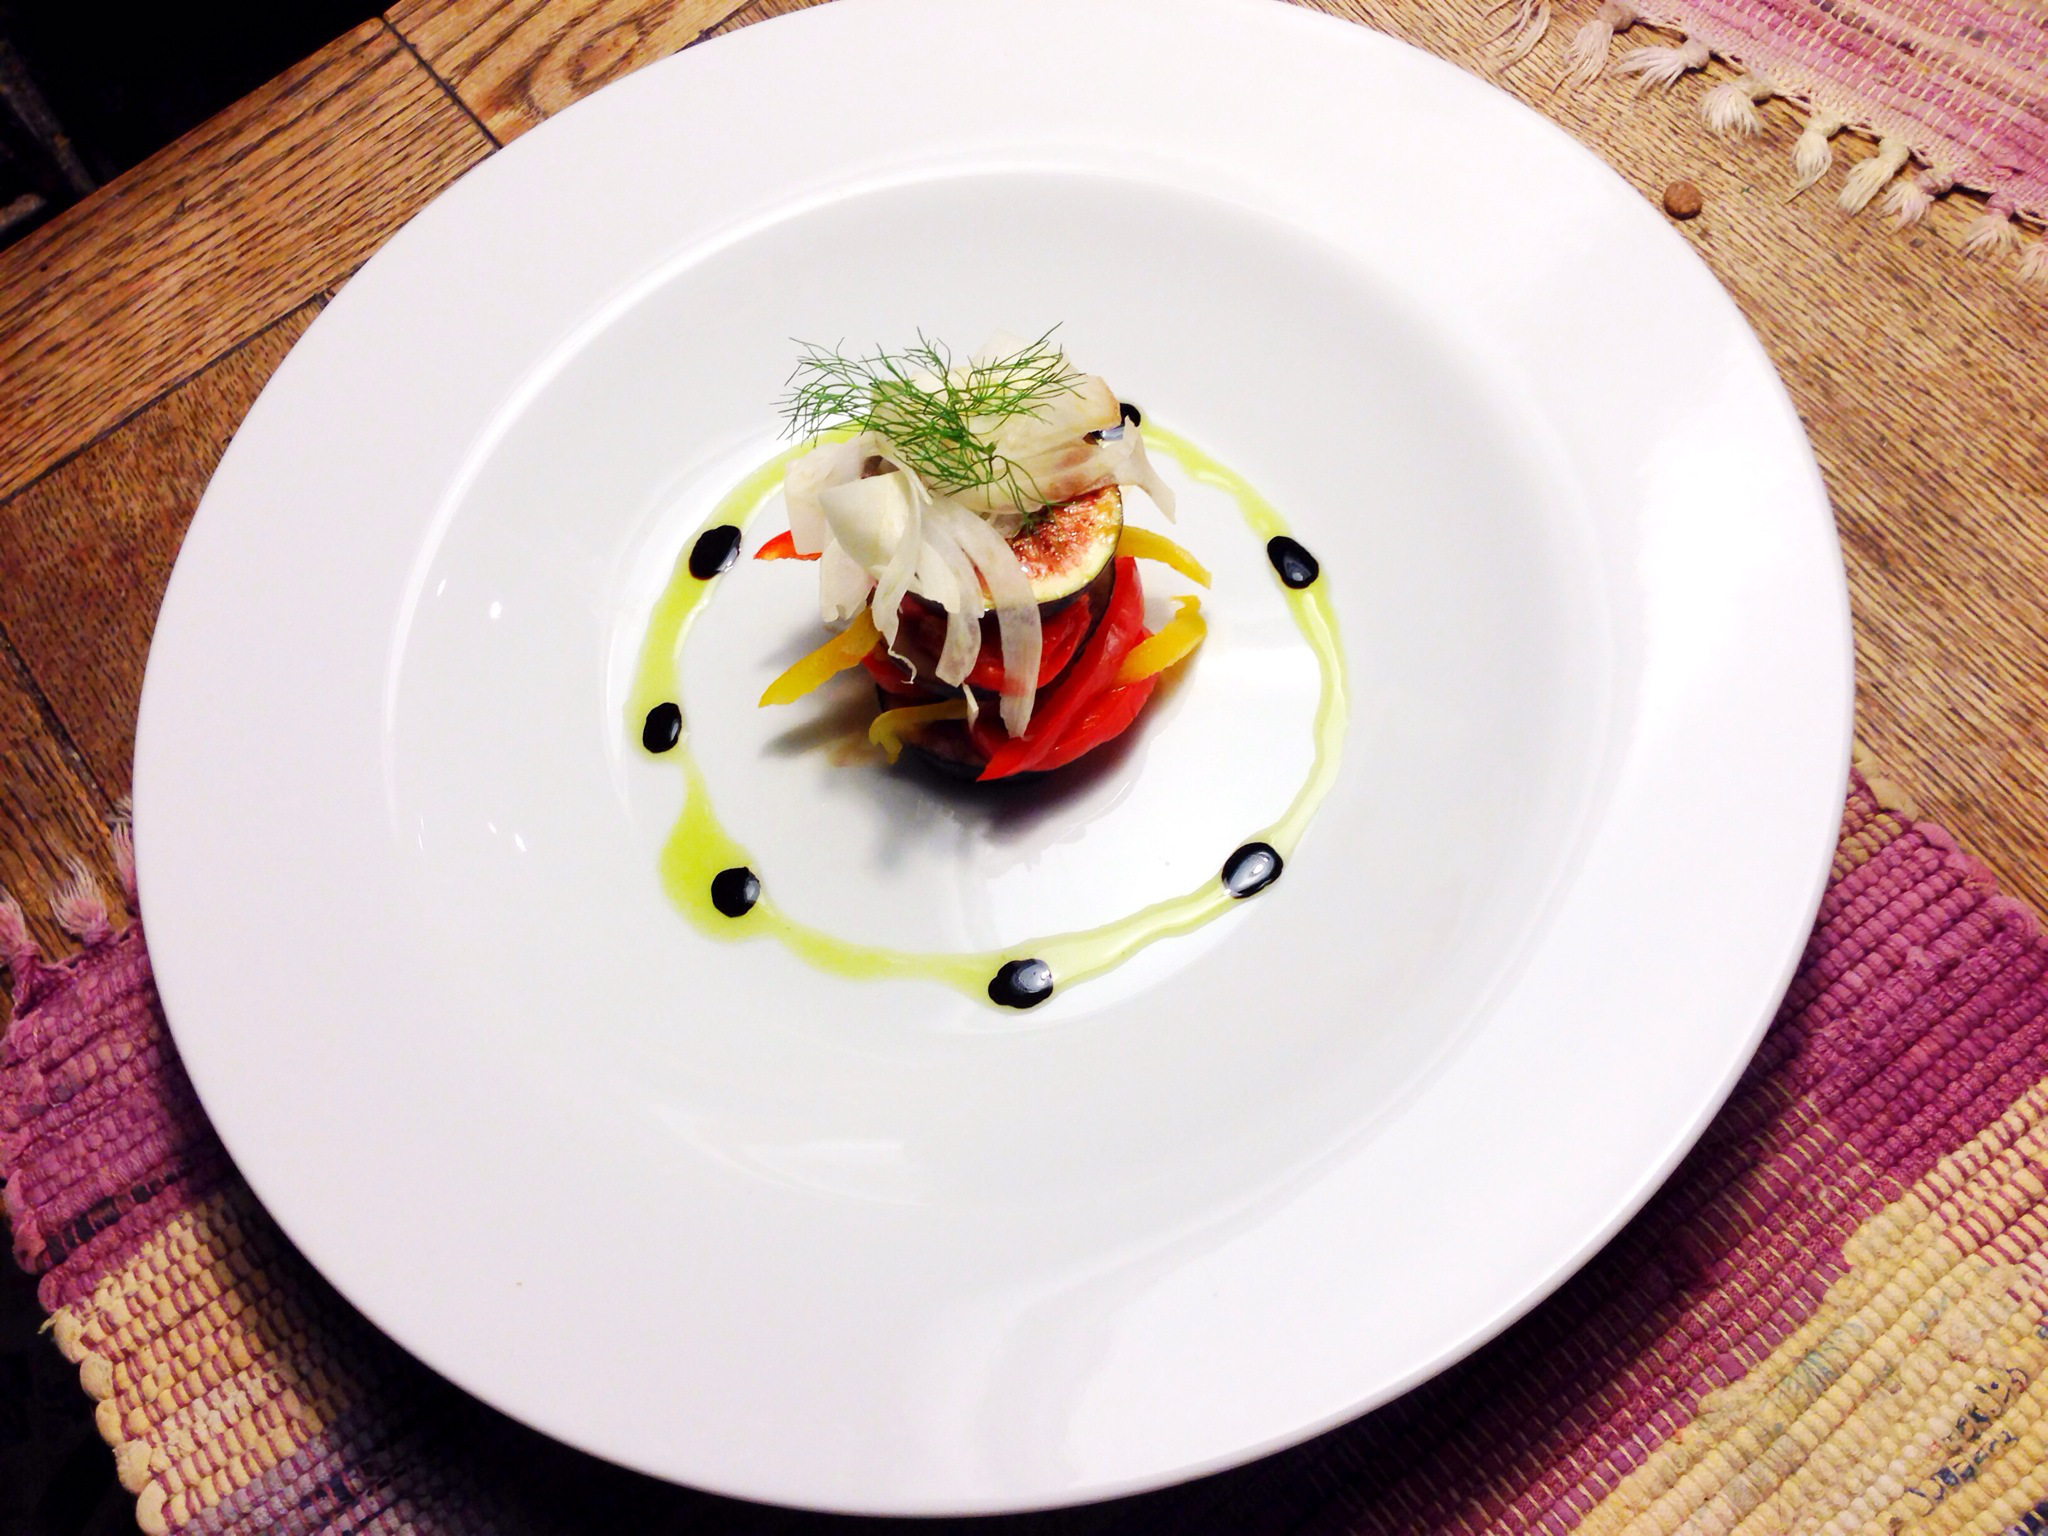 Salad of Black Figs with Roasted Sweet Peppers and Shaved Fennel